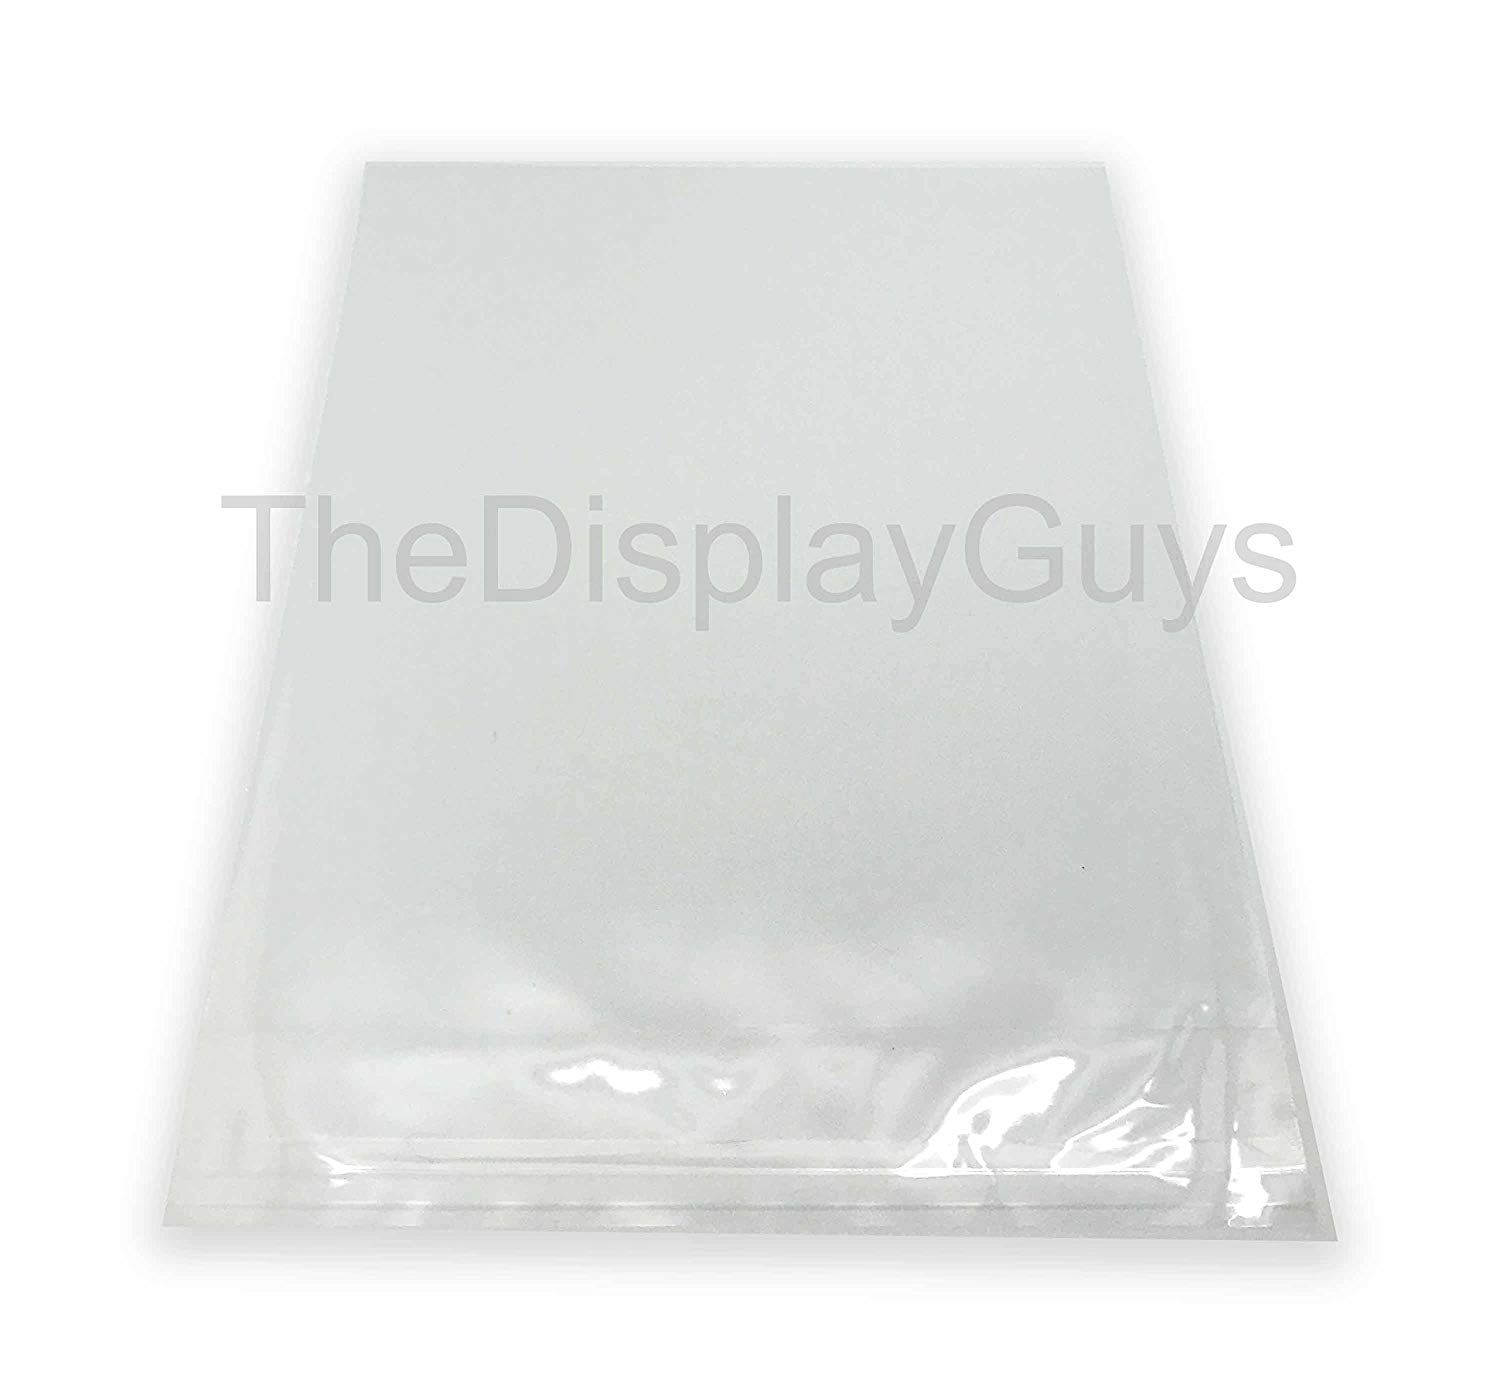 The Display Guys 100 Pcs 12 7 16 X 18 1 4 Clear Self Adhesive Plastic Bags For 12 X 18 Inches Picture Poster Photo Framin Glue Crafts Adhesive Plastic Bag